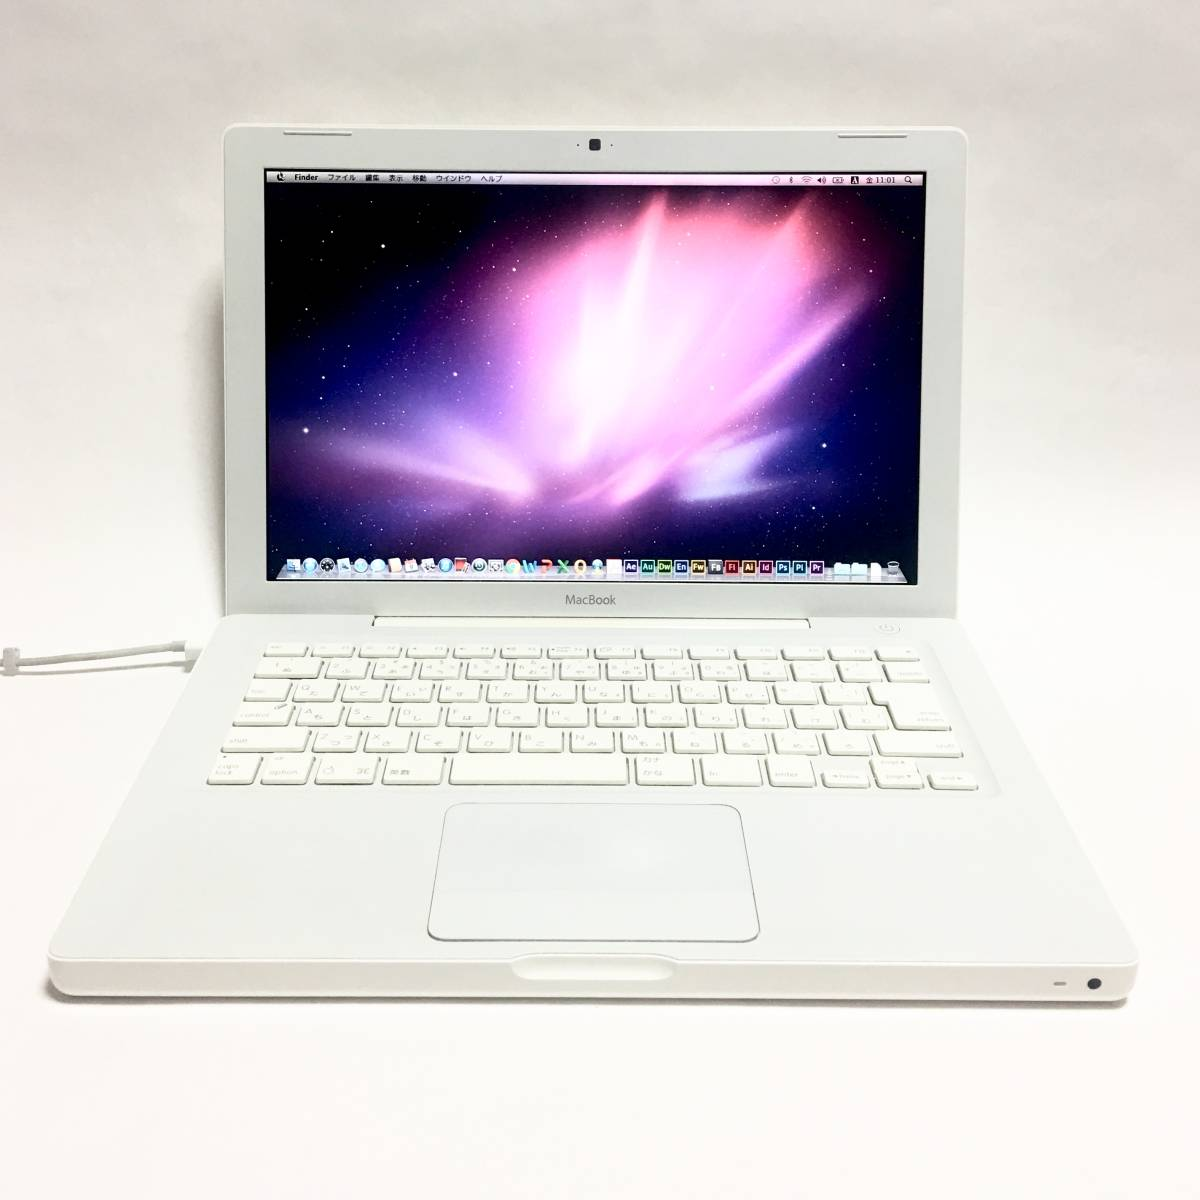 MacBook 2.1 Mid2007 / Mac OS X / Snow Leopard / C2D 2.16GHz / 4GB / 160GB / Adobe C